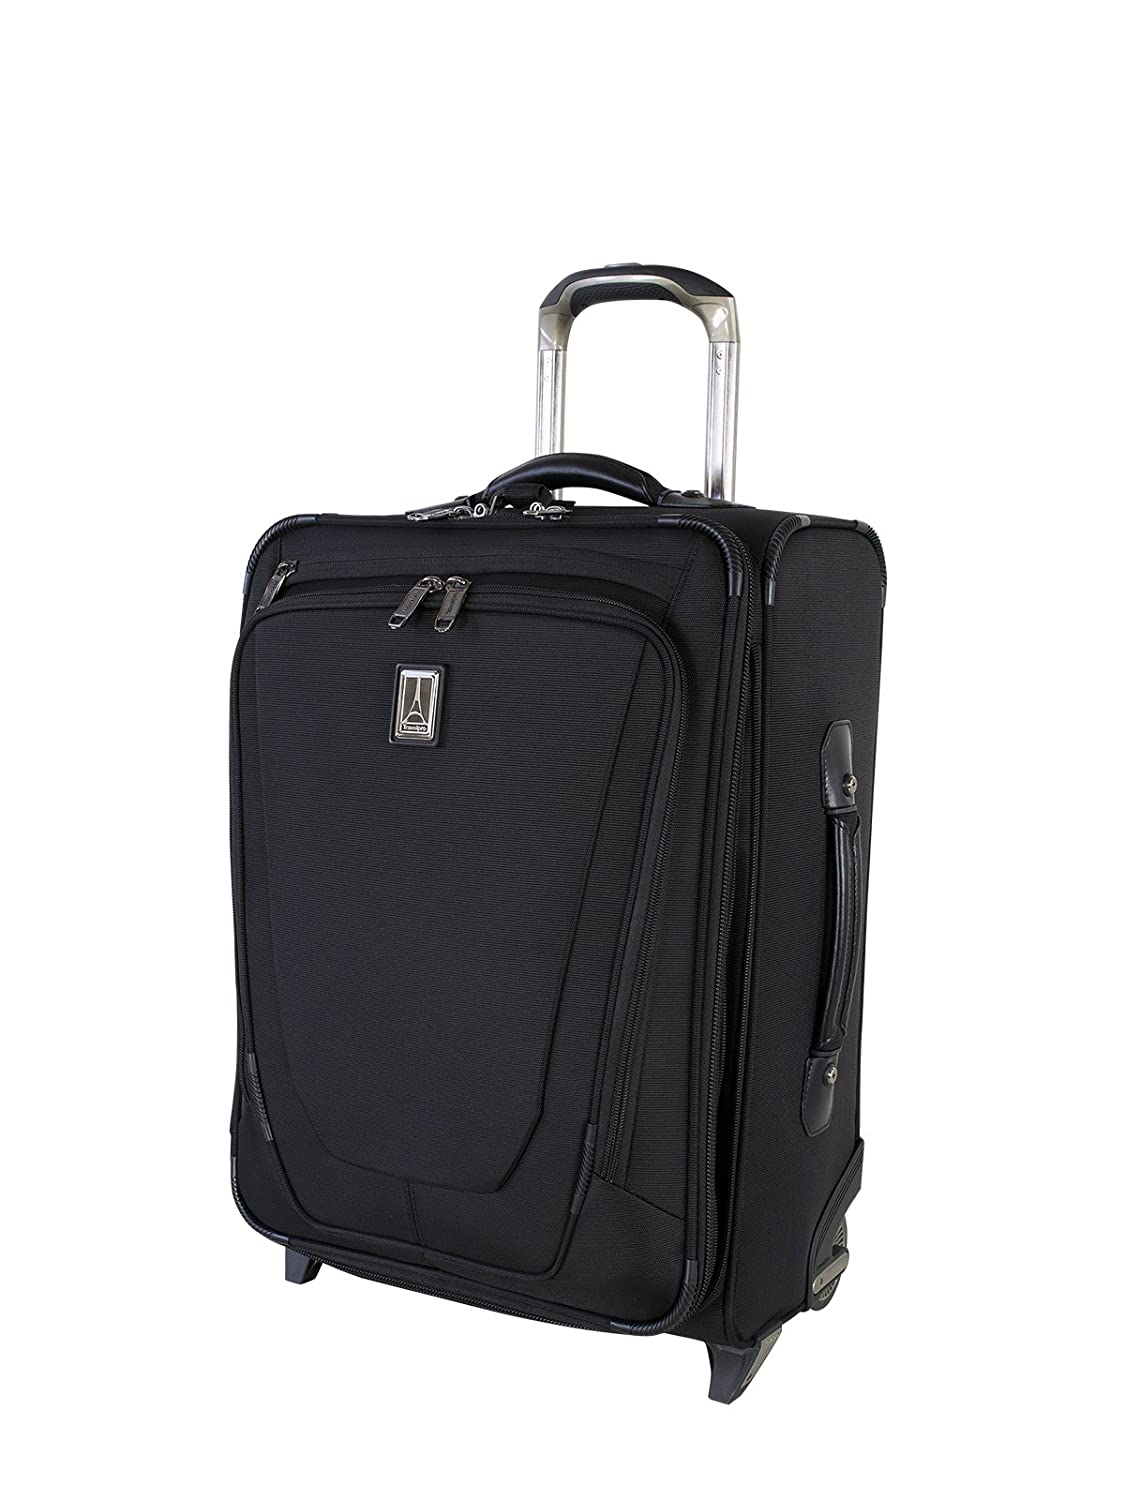 Travelpro Crew 11 International Carry-on - Expandable Rollaboard with Exterior USB Port 20-Inch, Black TP-HOLIDAY GROUP LIMITED 4071620009